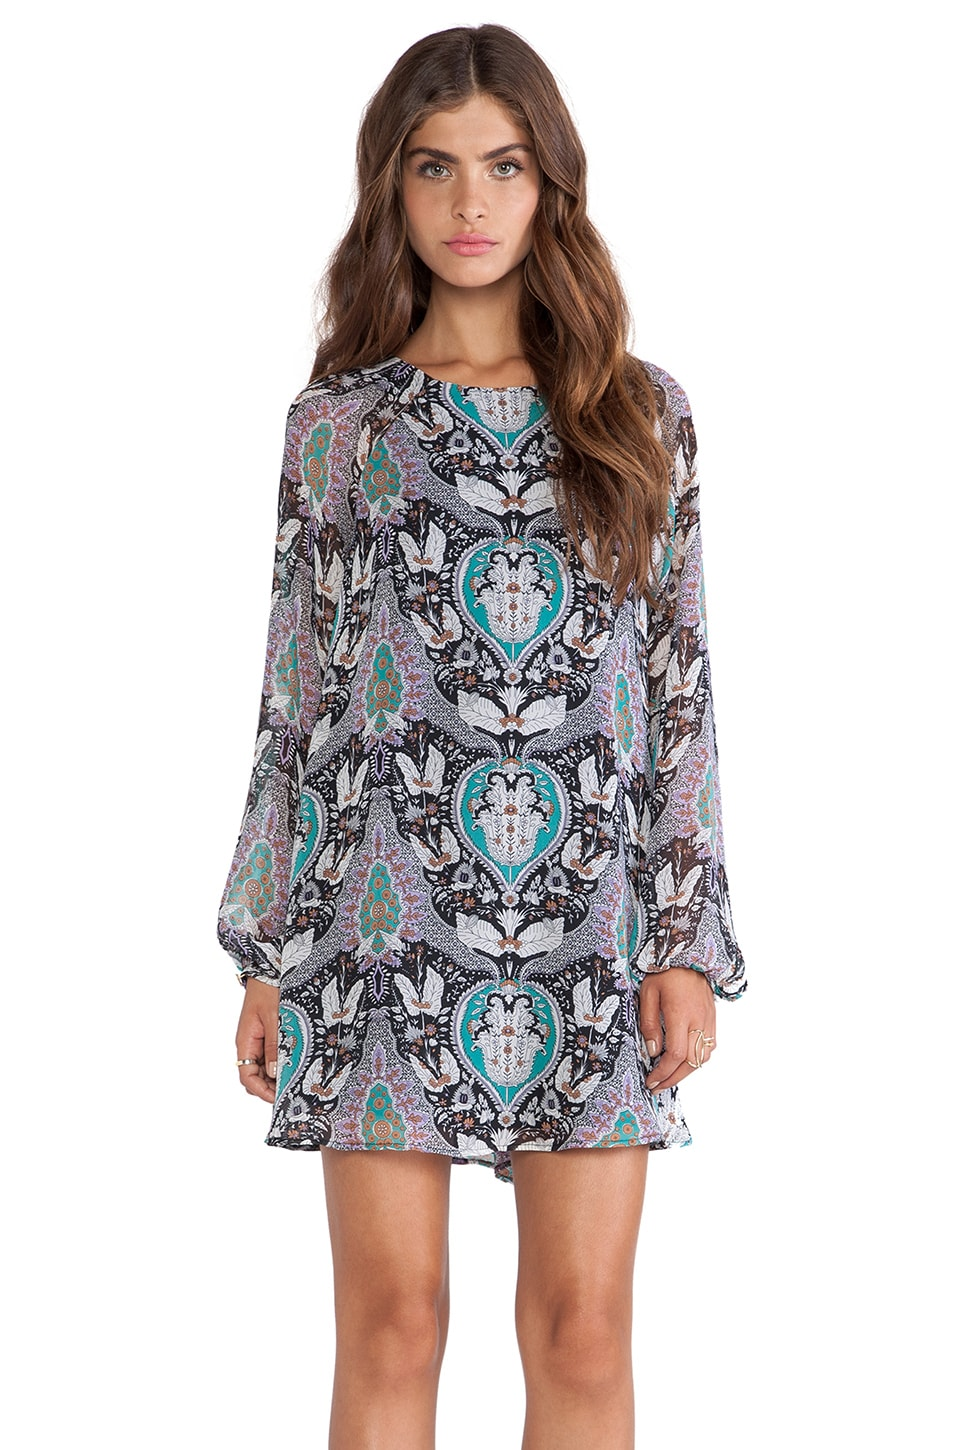 Lucca Couture Shift Dress in Black Boho